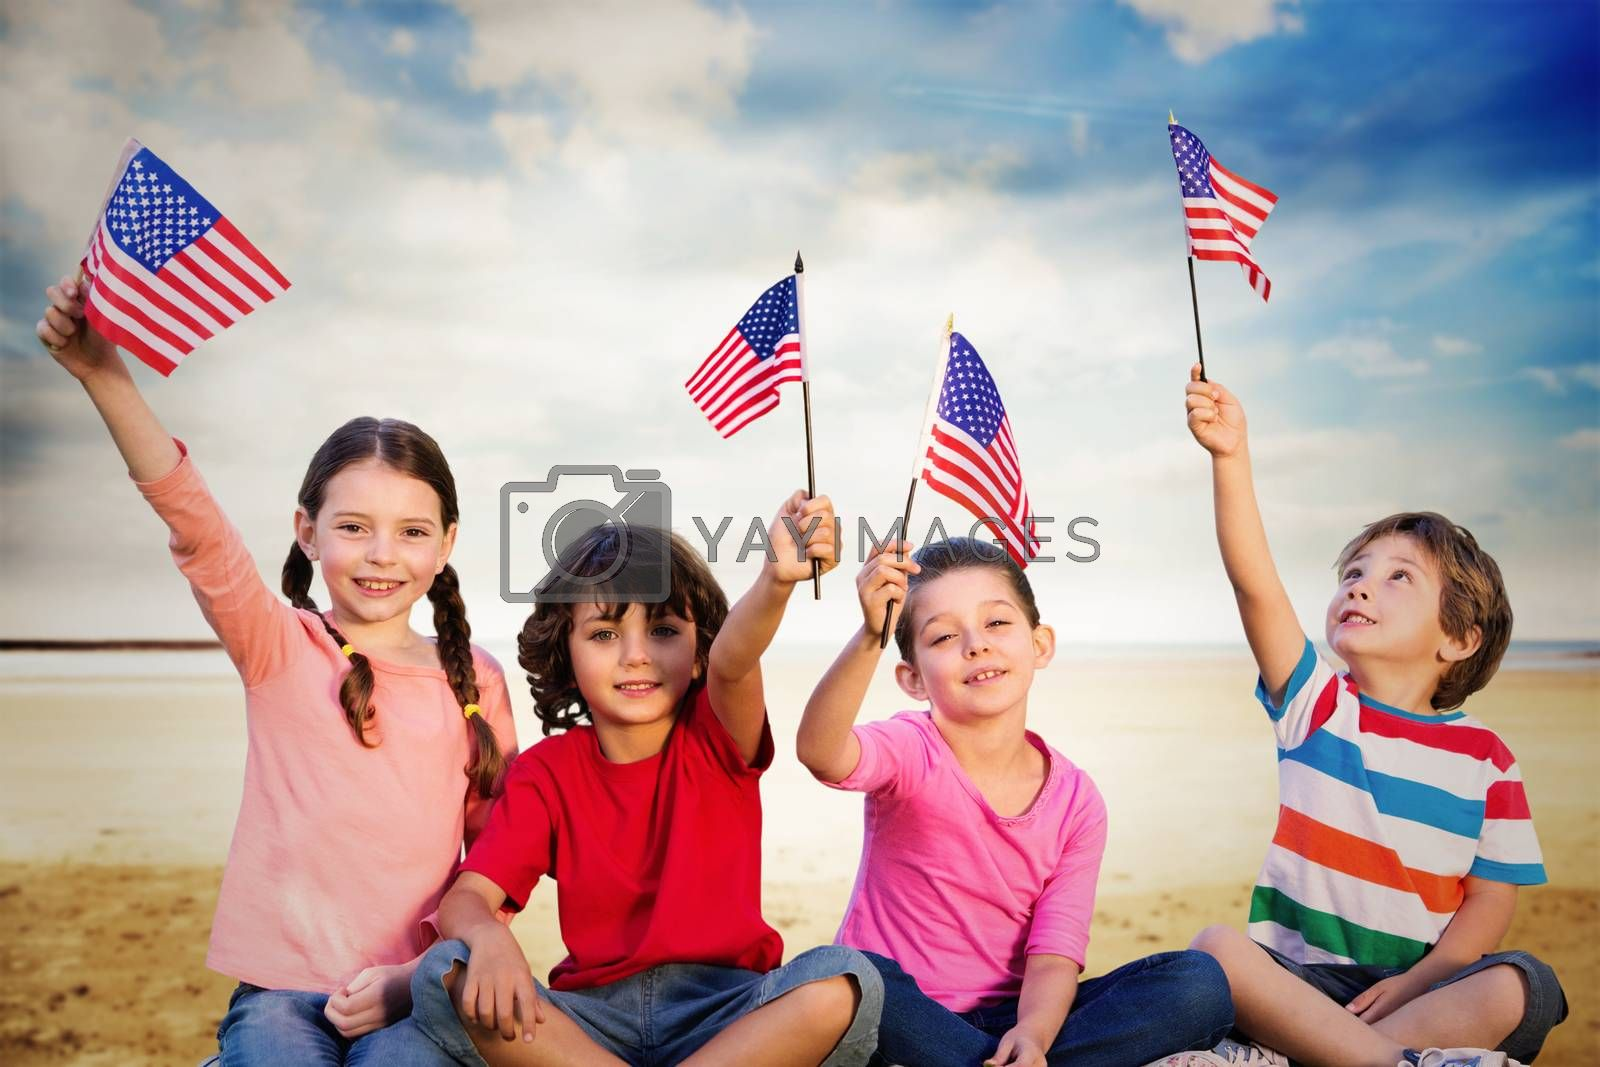 Children with american flags against serene beach landscape